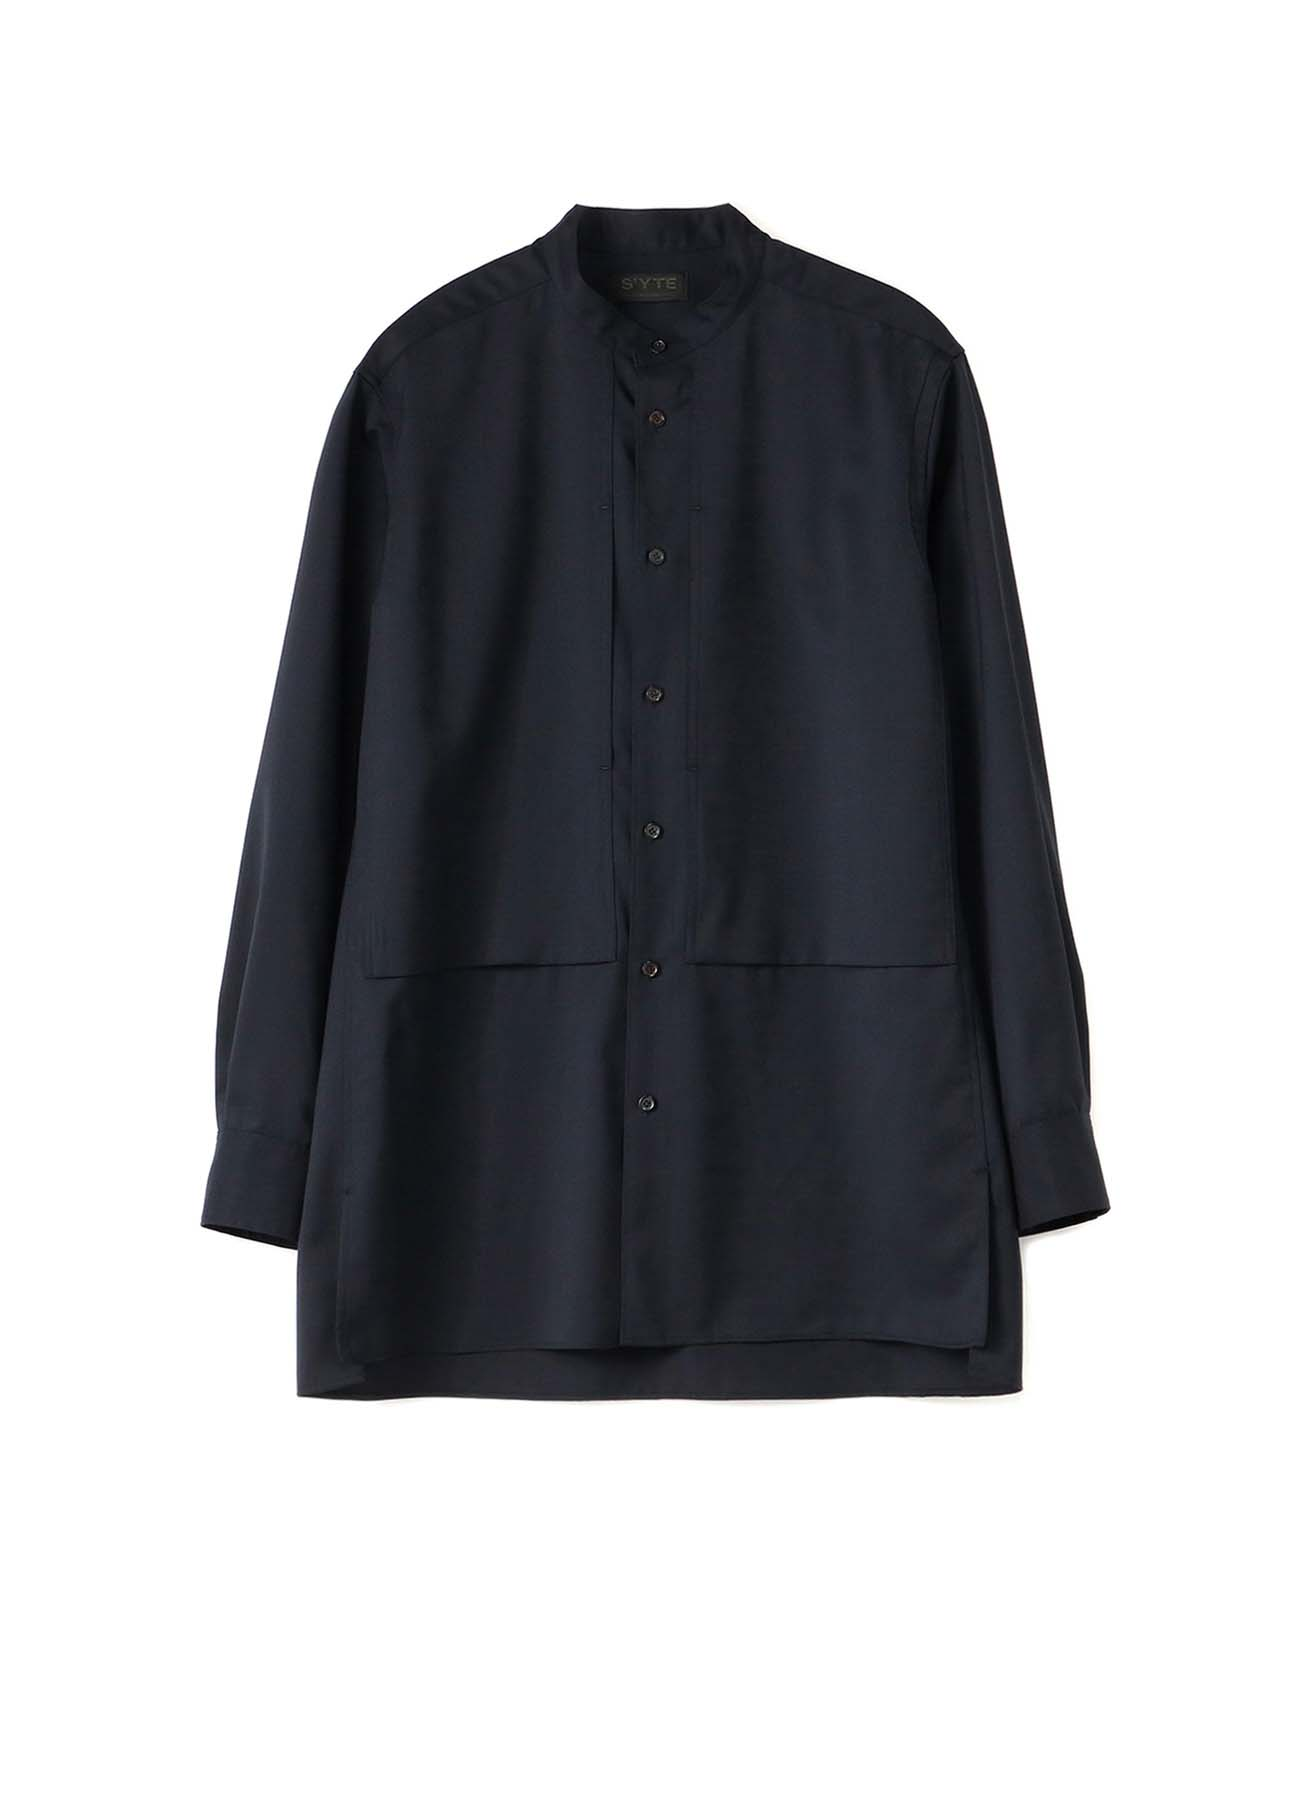 T/W Gabardine Stand Collar Center Slash Pocket Shirt